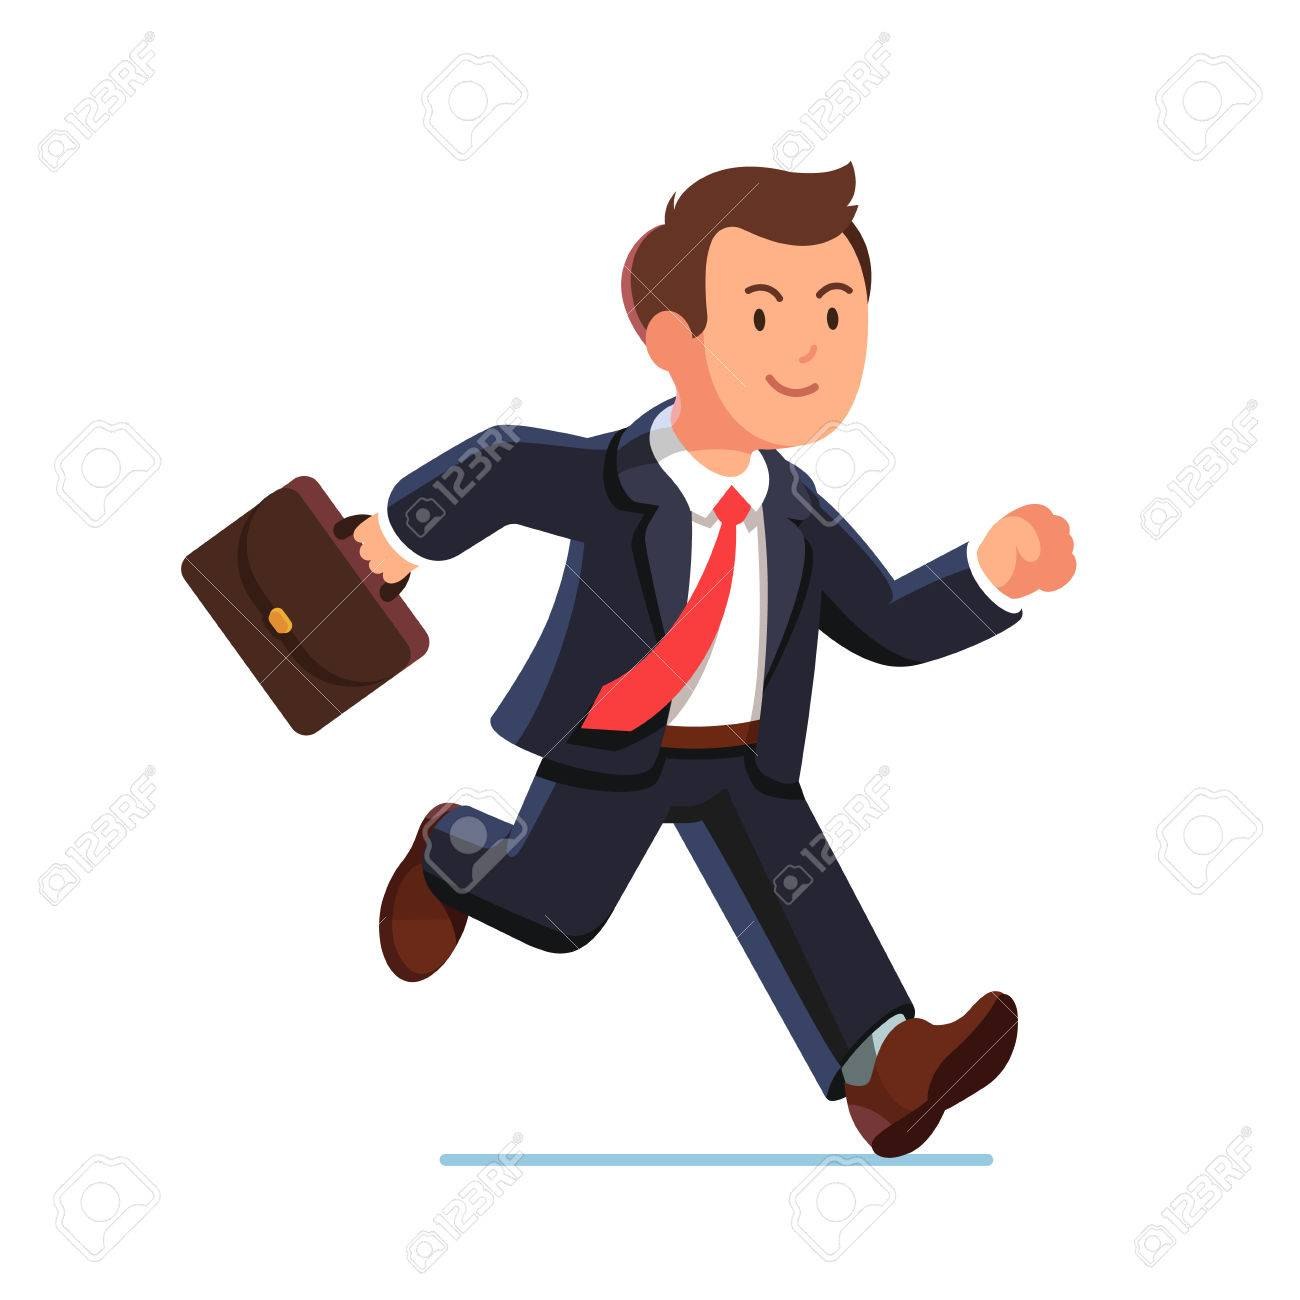 Business man in suit and red tie running fast holding briefcase.